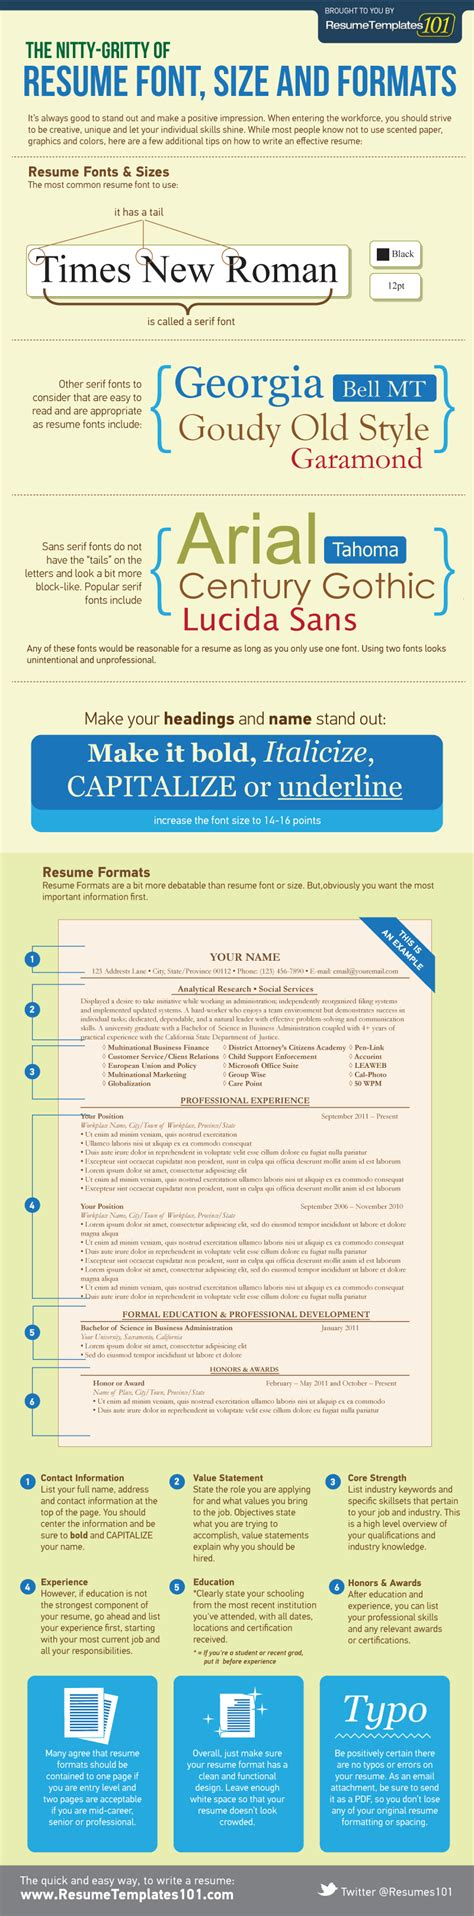 What Is The Best Resume Font, Size And Format ?  Zyoin. Best Professional Resume Writing Services. Property Manager Duties For Resume. Formal Resume Format. College Admissions Resume Samples. Sample Front Desk Resume. Resume Examples For Customer Service Jobs. Resume Writing Services In India. Sample Email Format For Sending Resume